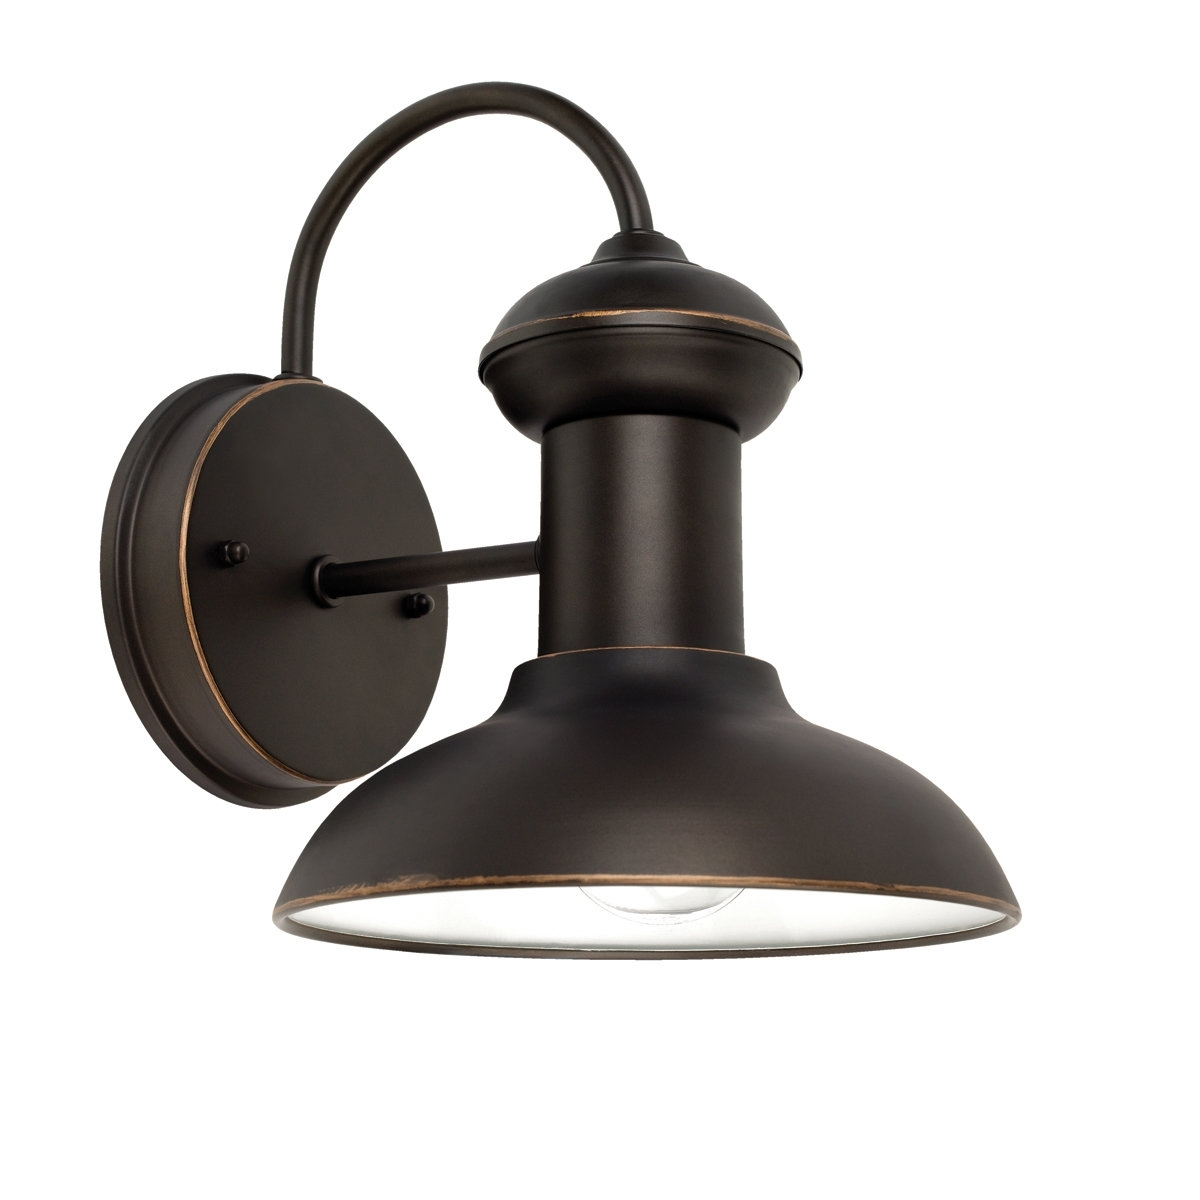 Modern Outdoor String Lights At Wayfair For Popular Outdoor Lighting Sale You'll Love (View 9 of 20)